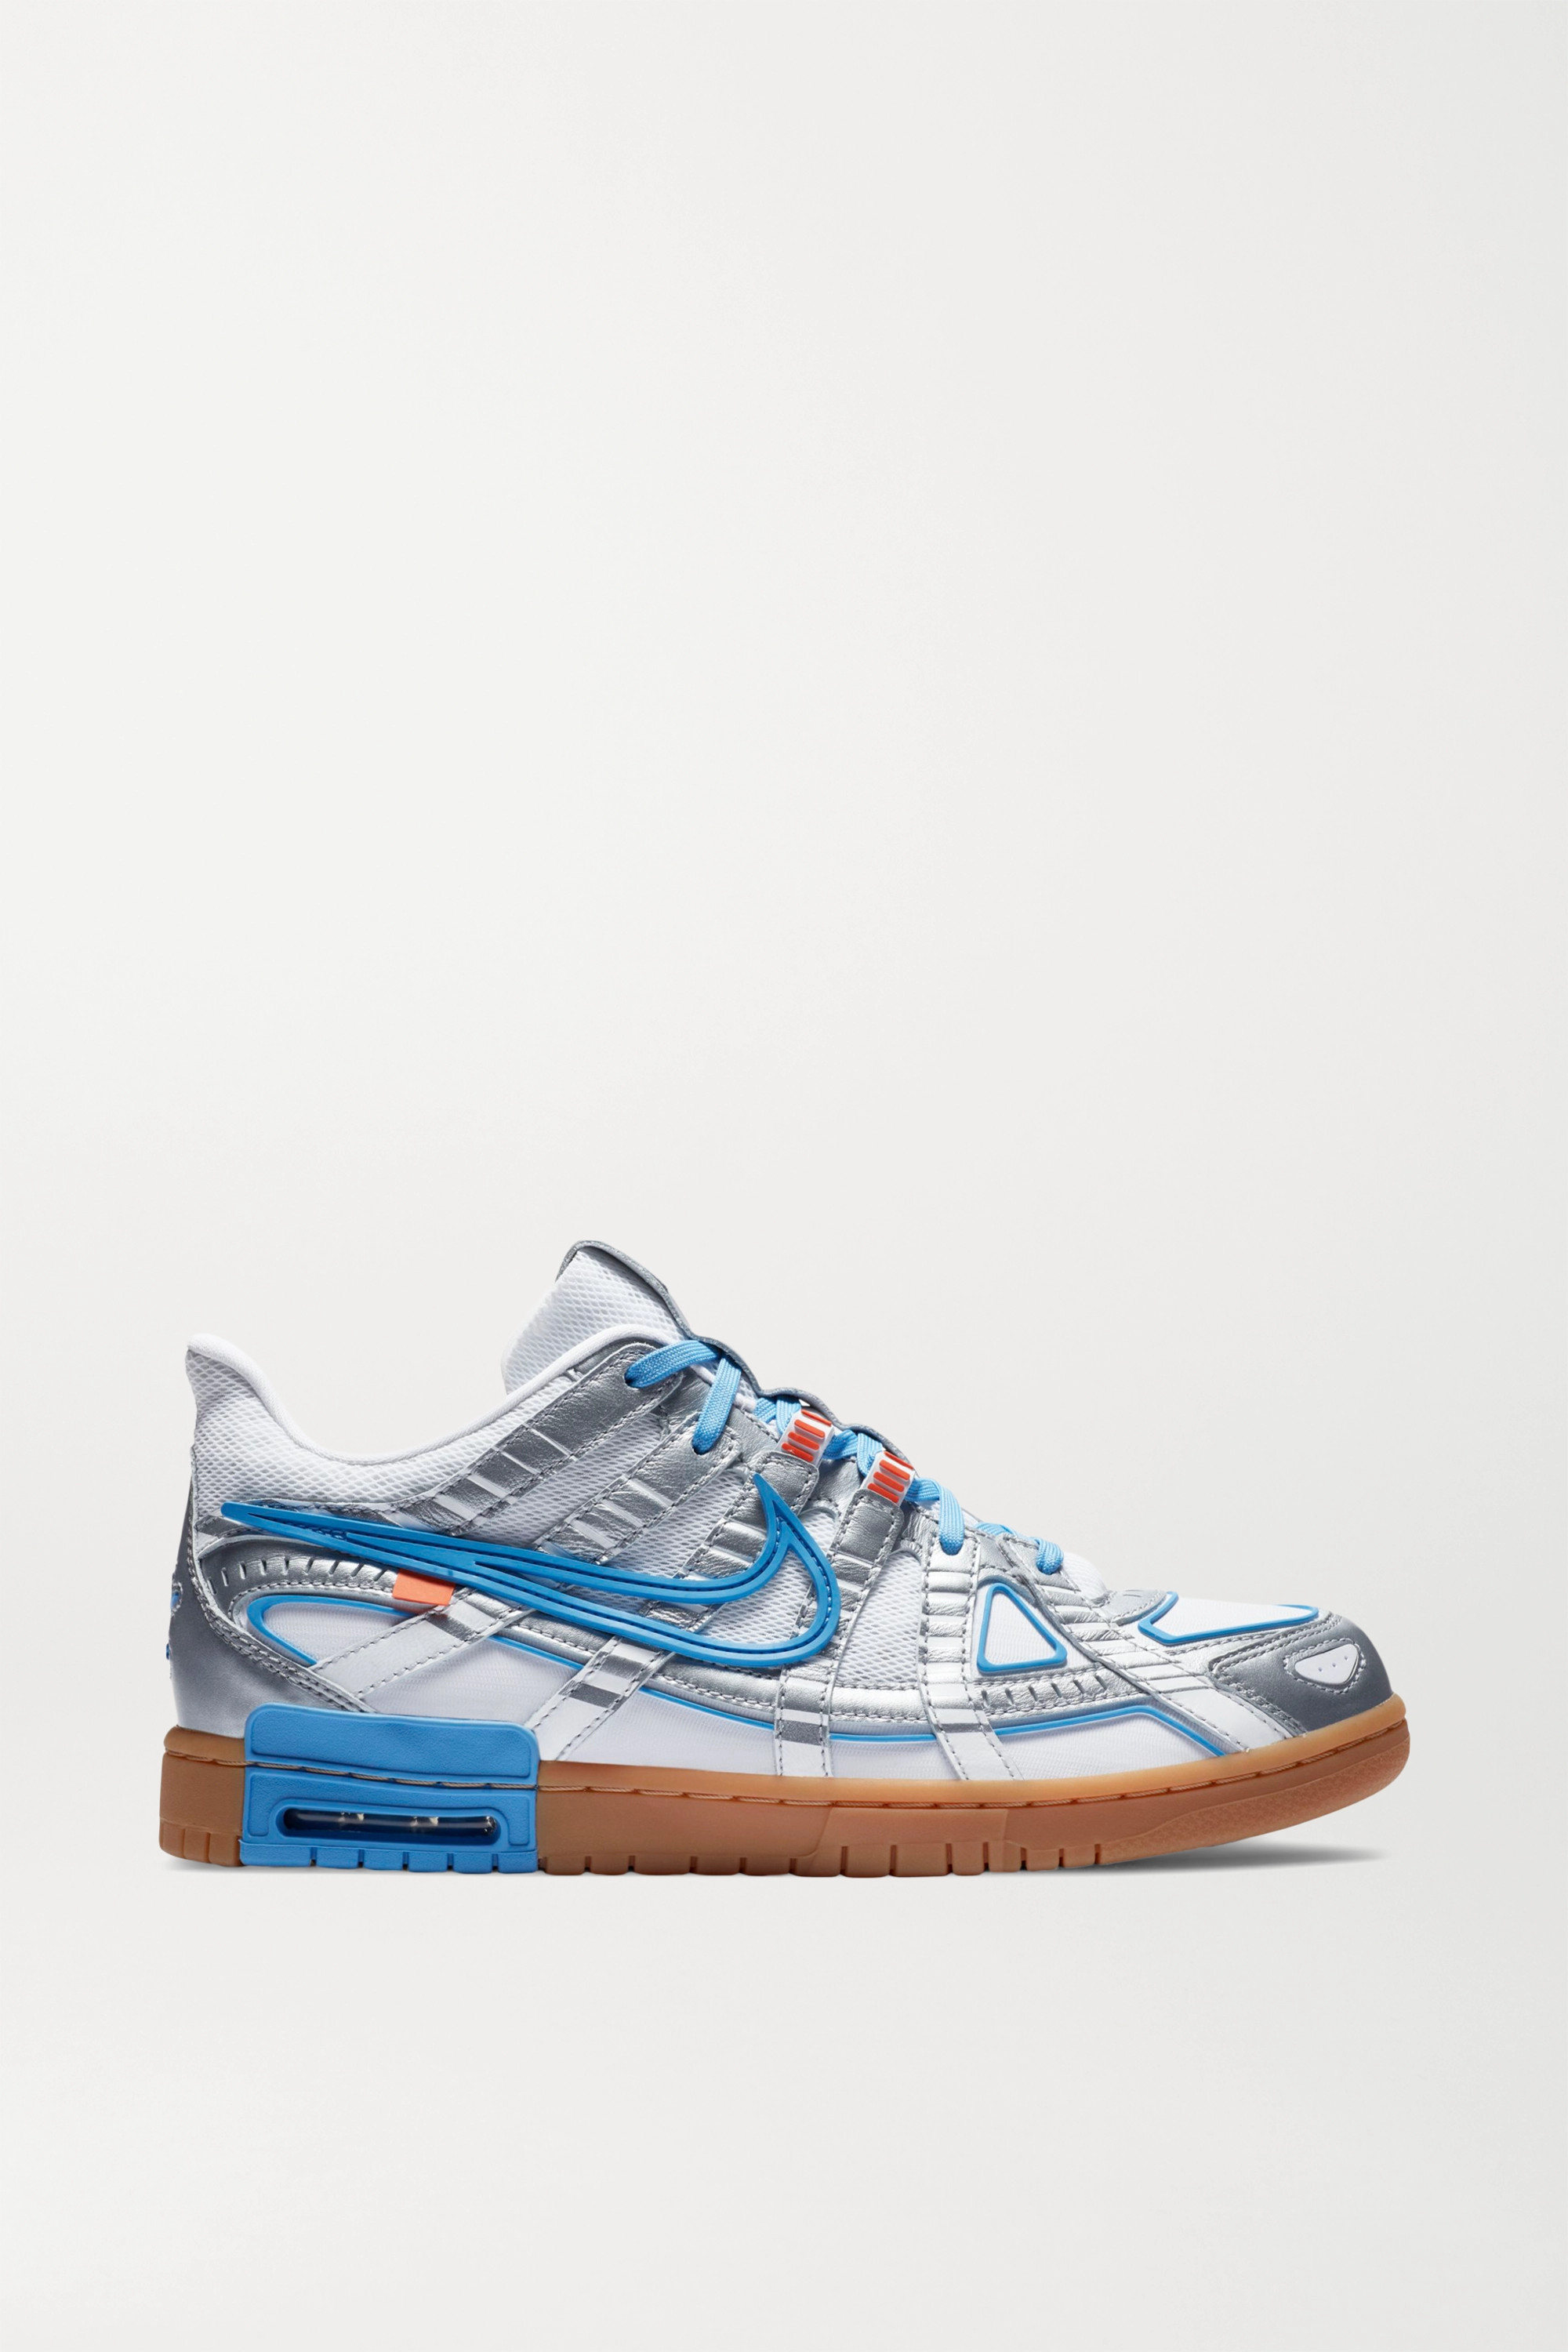 White + Off-White Air Rubber Dunk leather and mesh sneakers   Nike   NET-A-PORTER